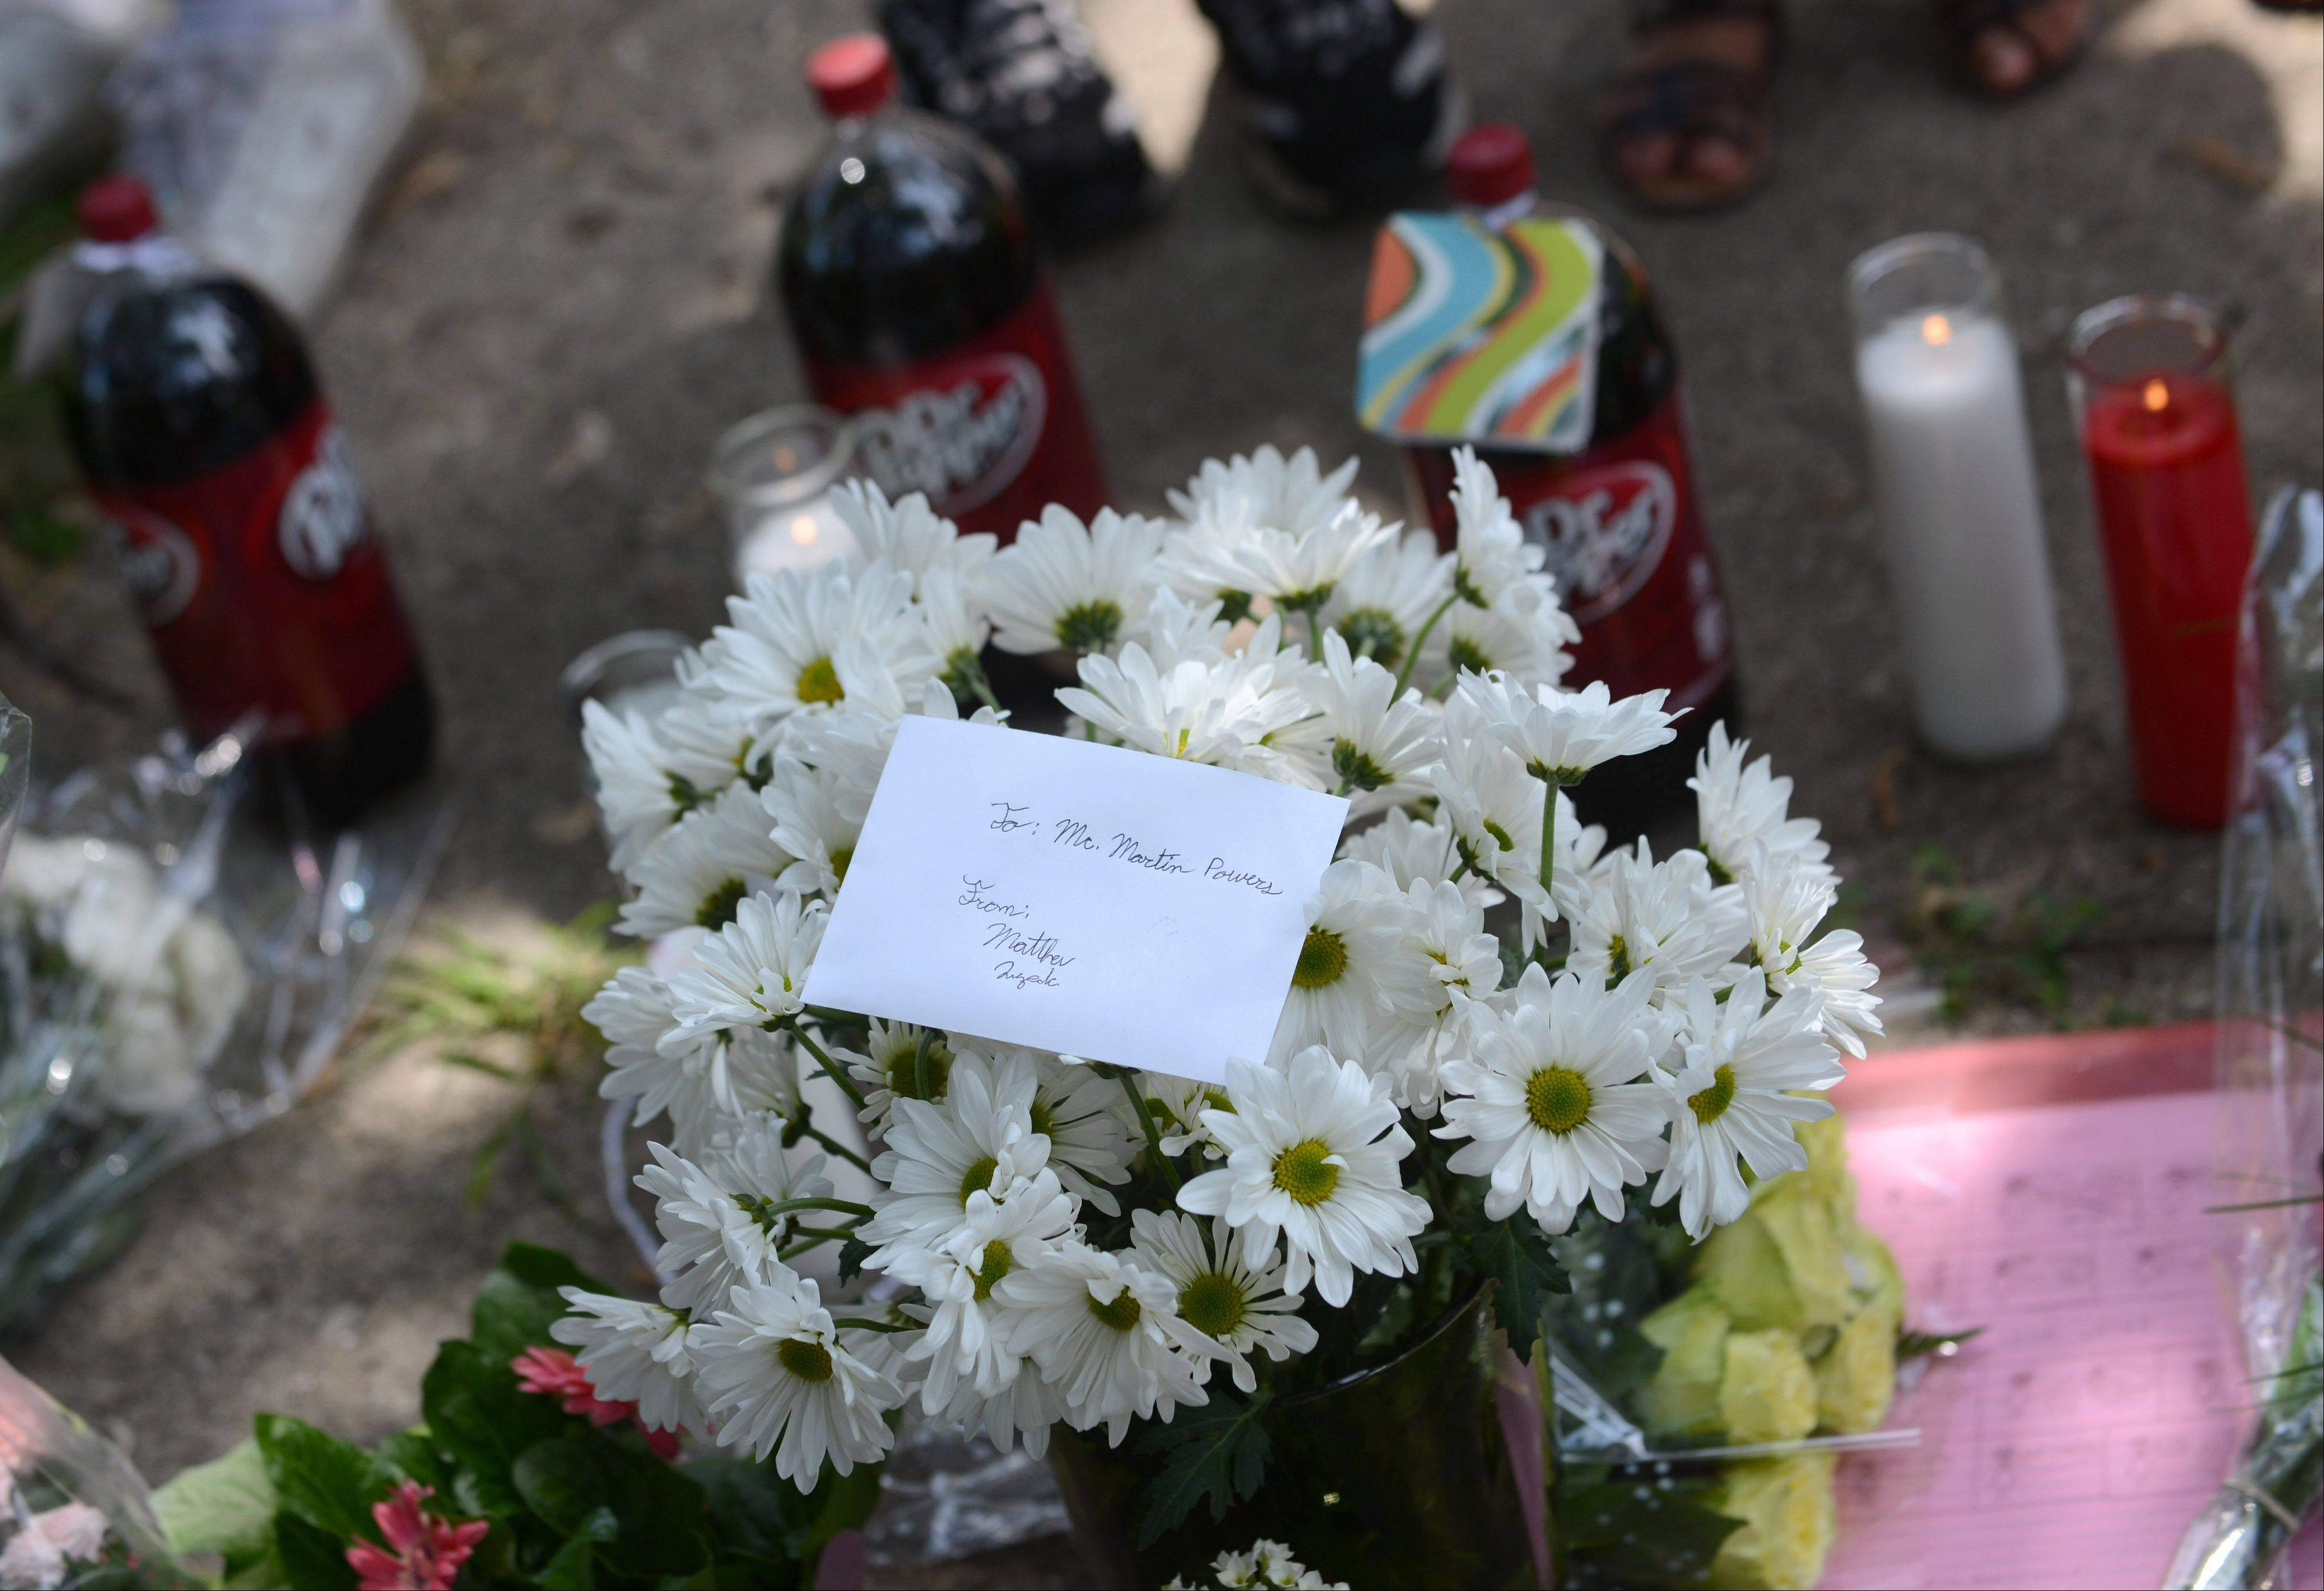 Current and former students left flowers, candles, notes and Dr Pepper, a favorite of Kimball Middle School teacher Martin Powers, at a memorial outside his Elgin home Monday.